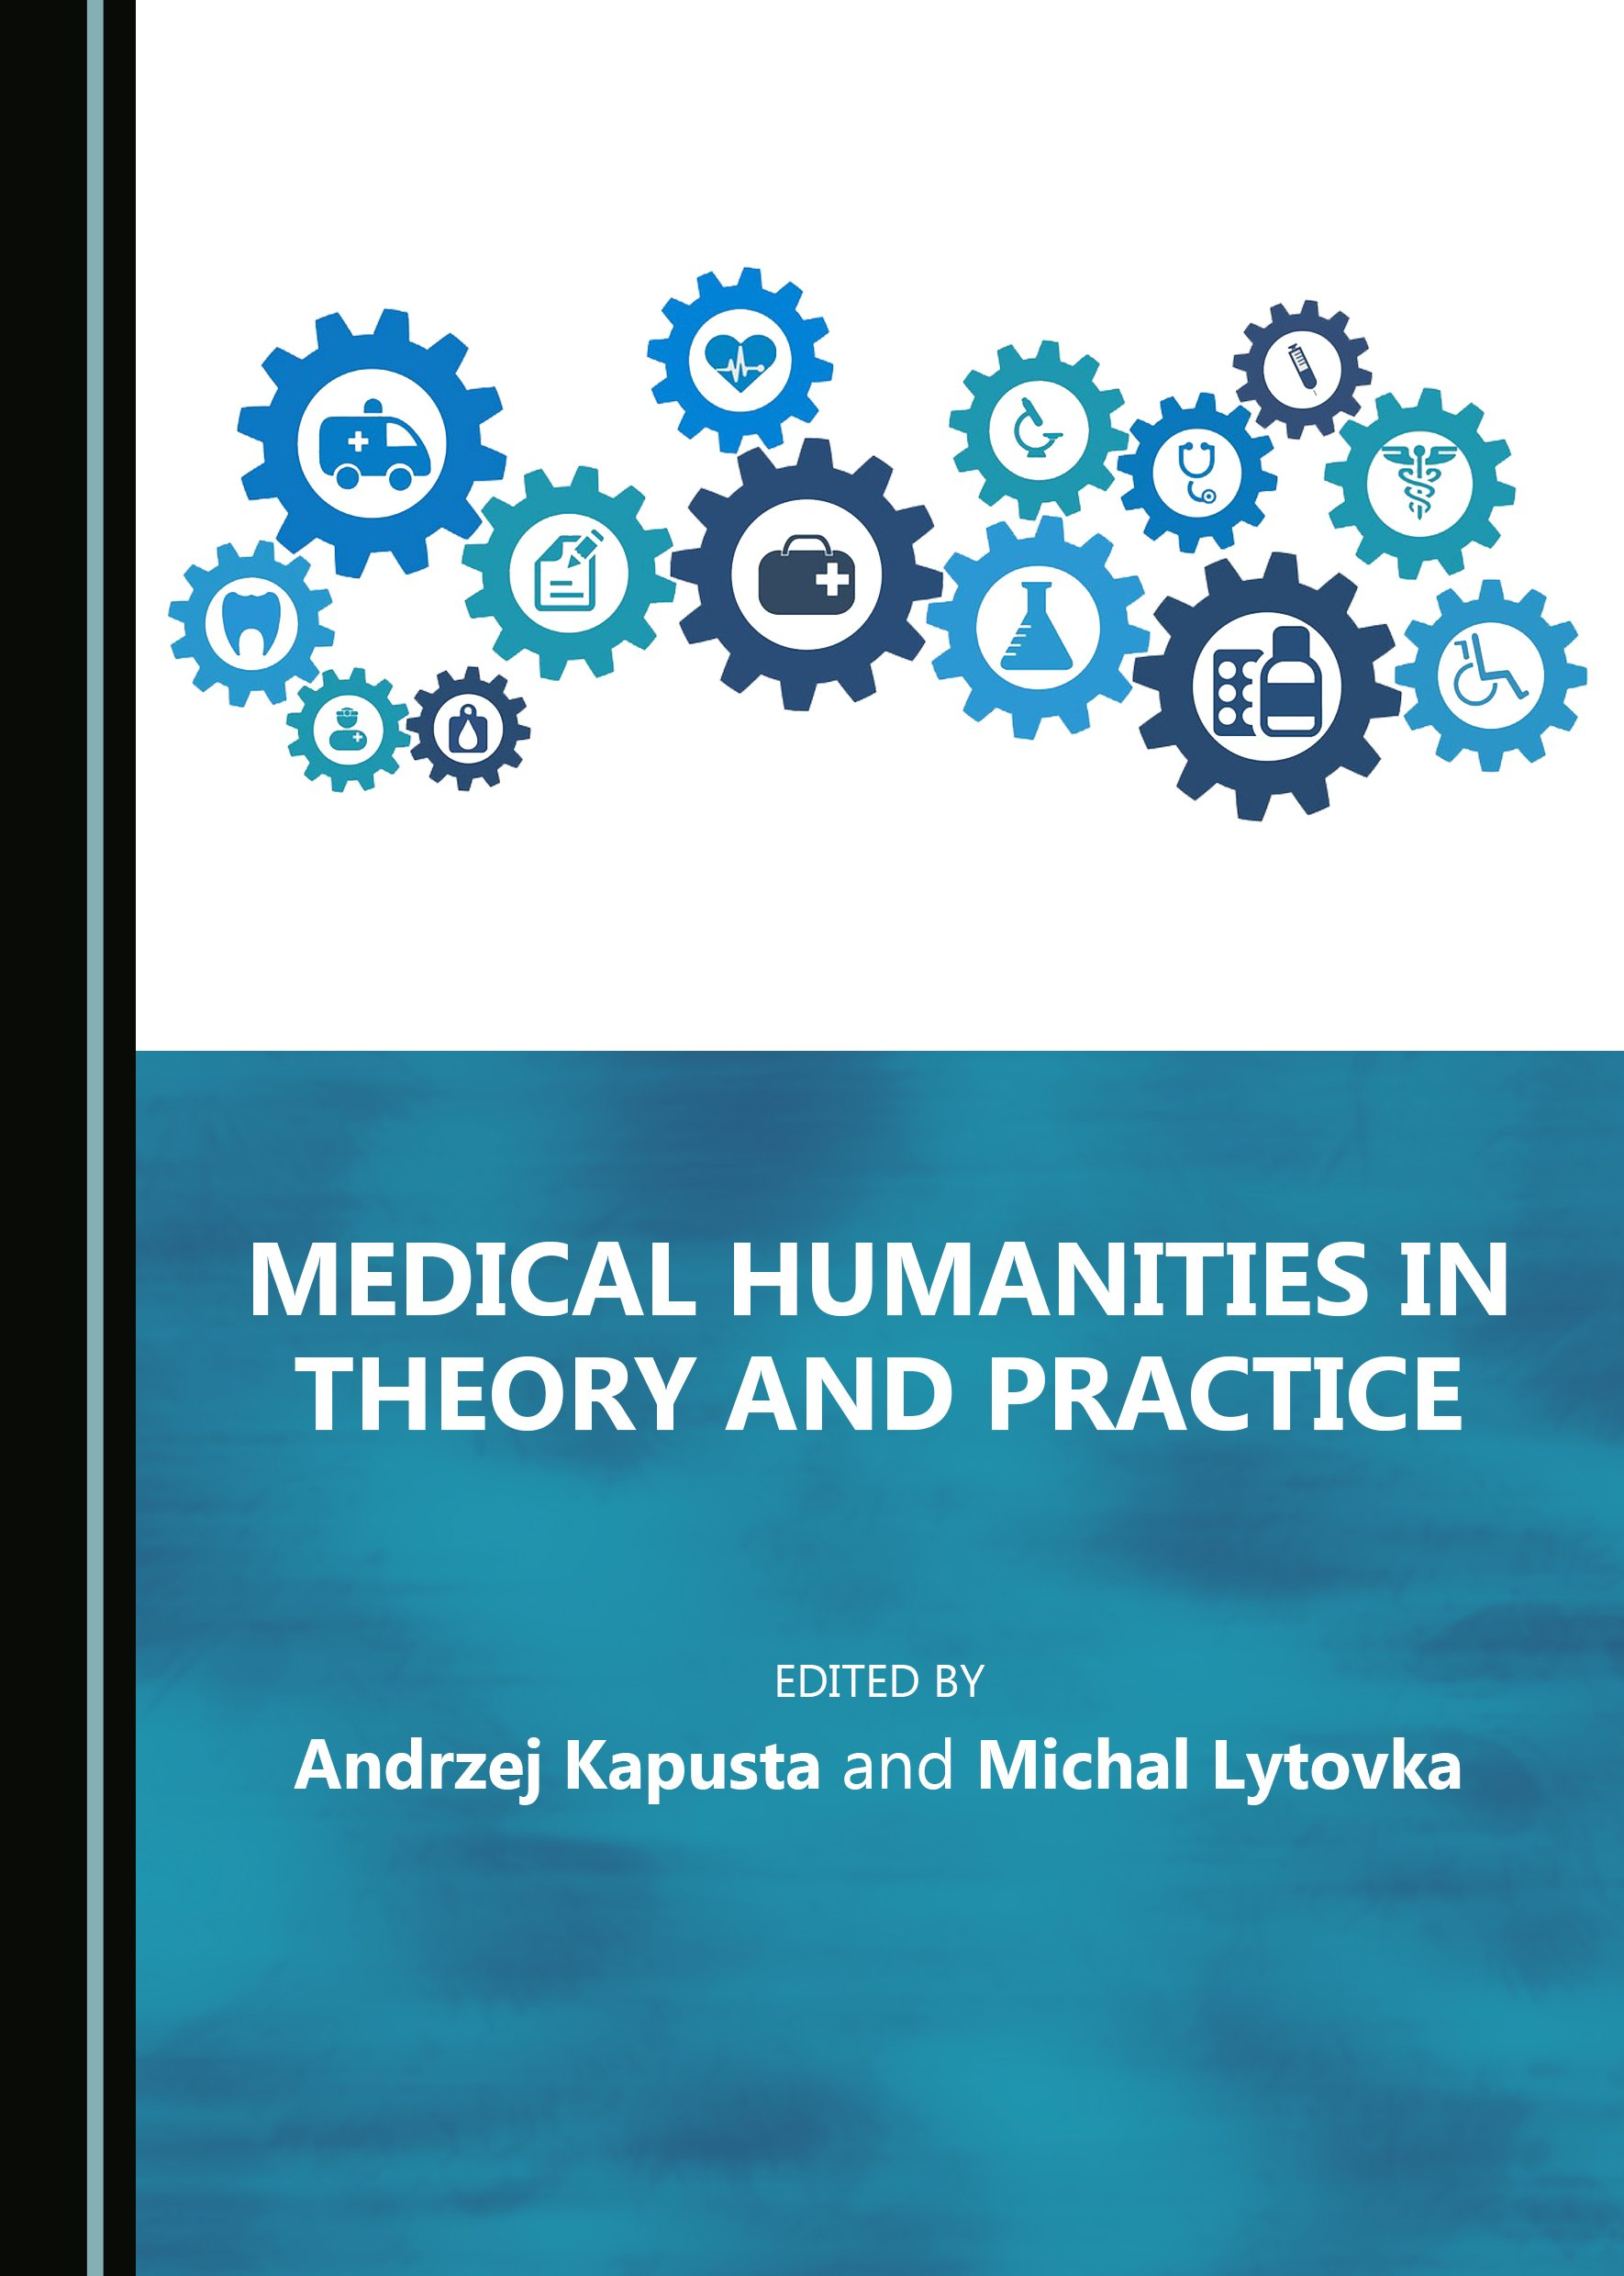 Medical Humanities in Theory and Practice